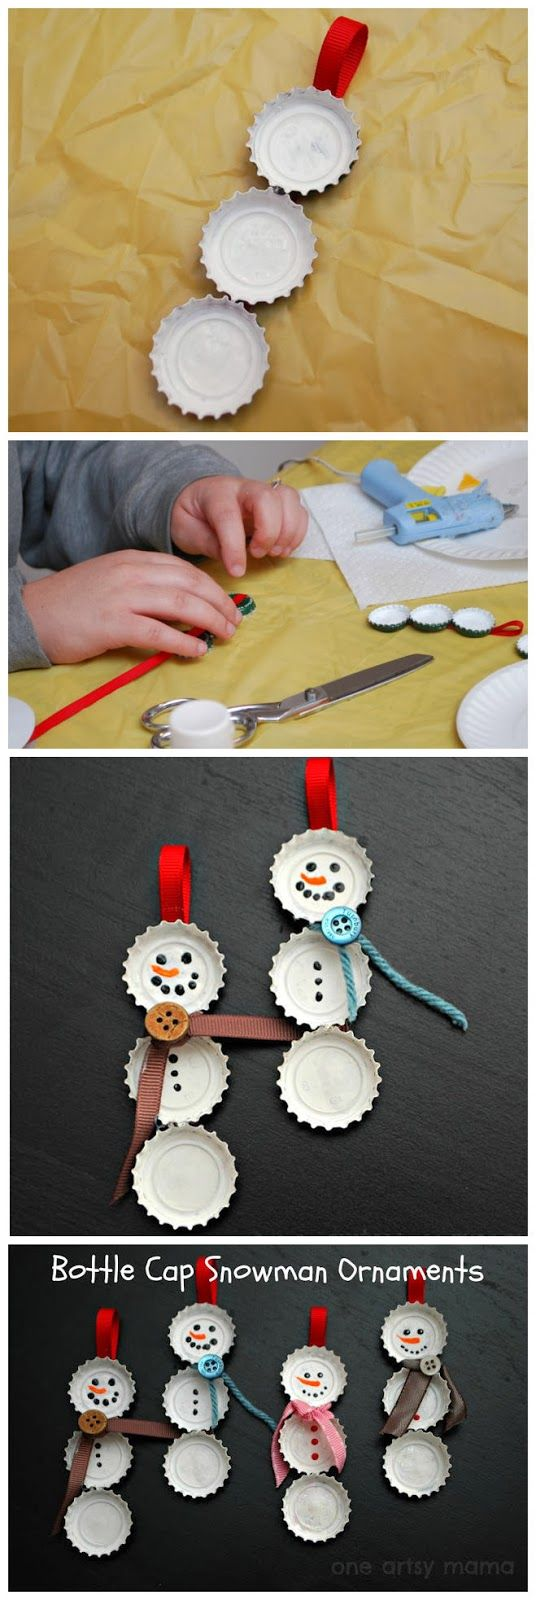 Bottle Cap Snowman Ornaments #christmas